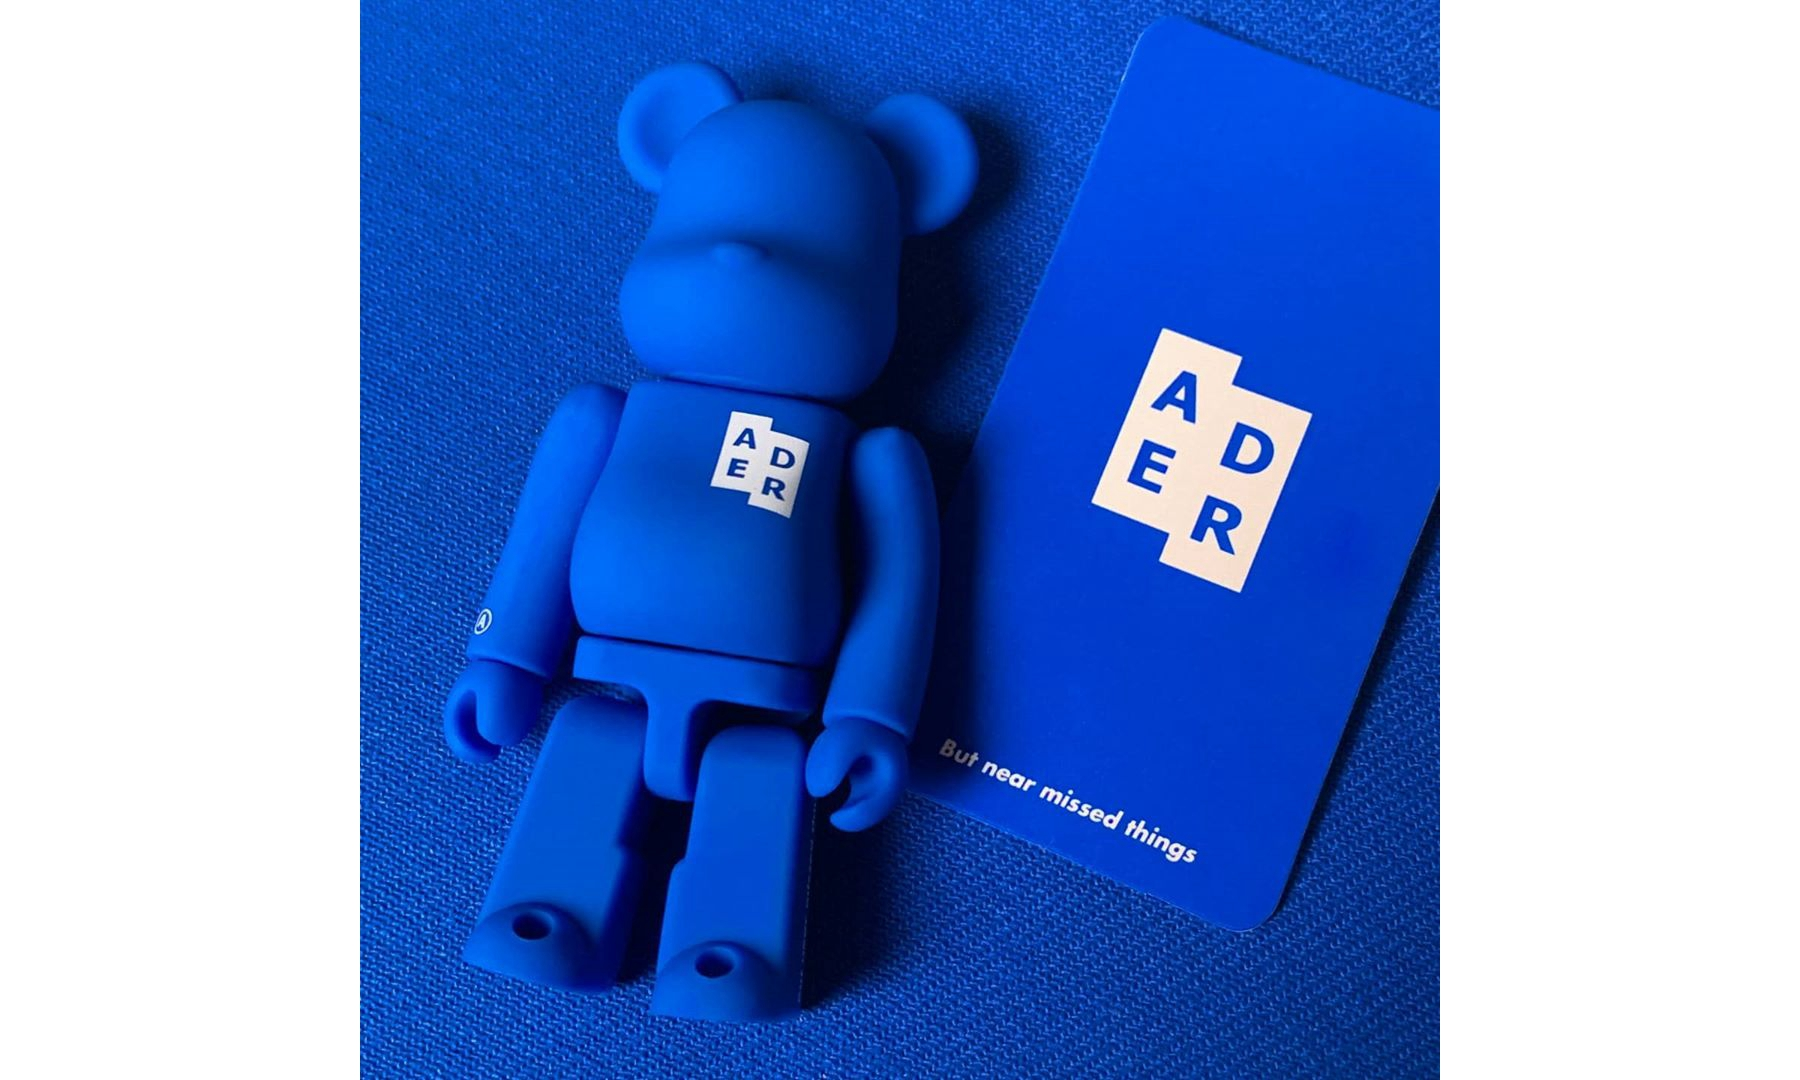 ADER Error x MEDICOM TOY 联乘 BE@RBRICK 玩偶正式登场